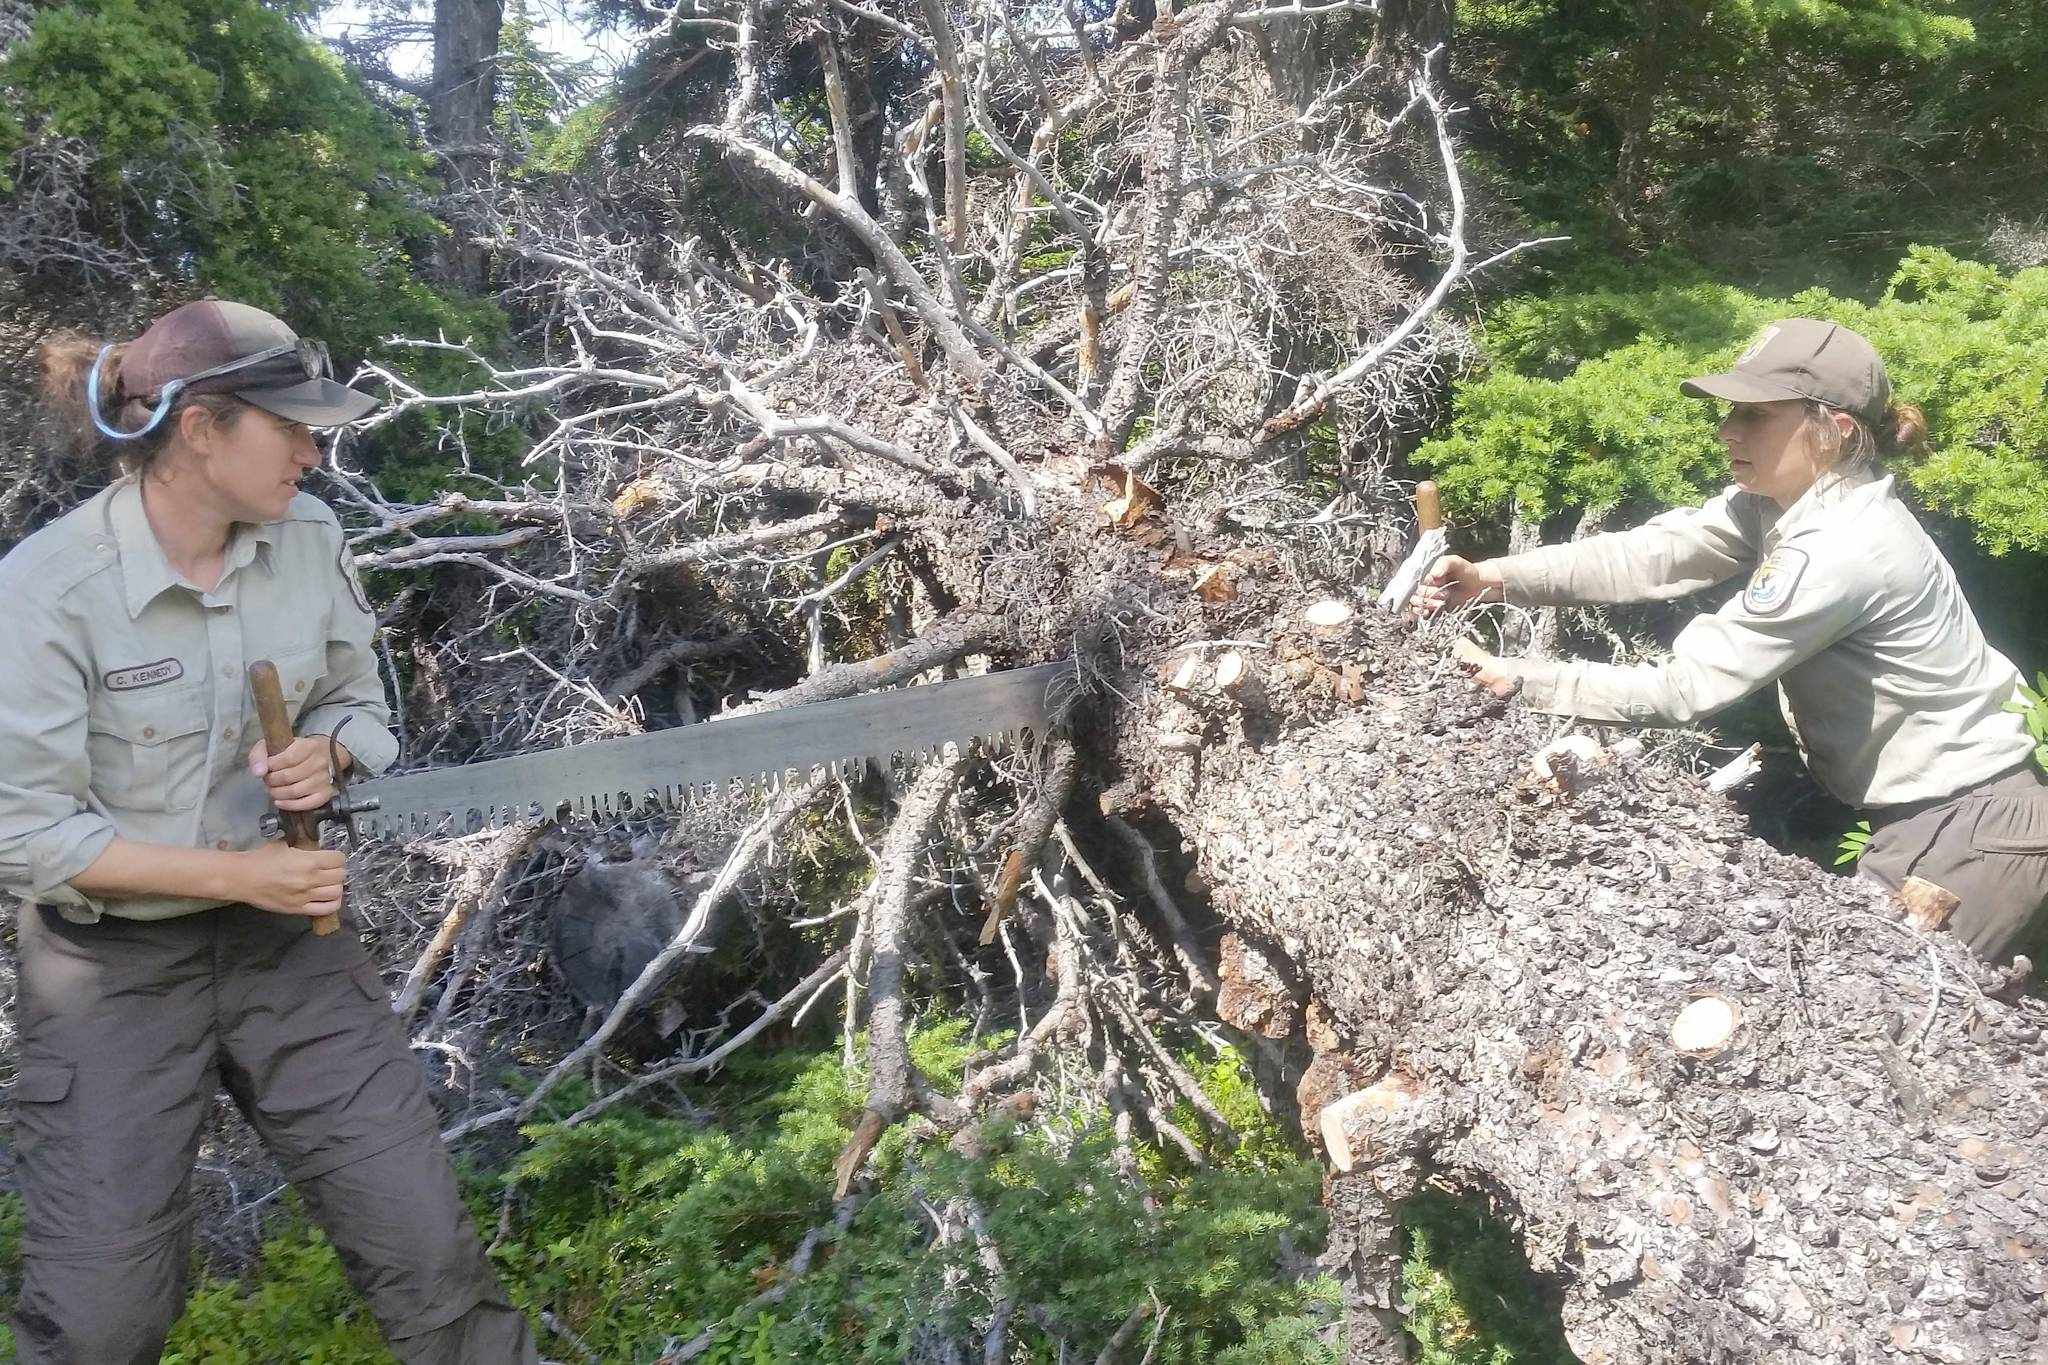 Christa Kennedy and Izzie Giacomangeli double-buck a downed tree in July 2018 on Surprise Creek Trail within the Andrew Simons Wilderness Unit. (Photo provided by Kenai National Wildlife Refuge)